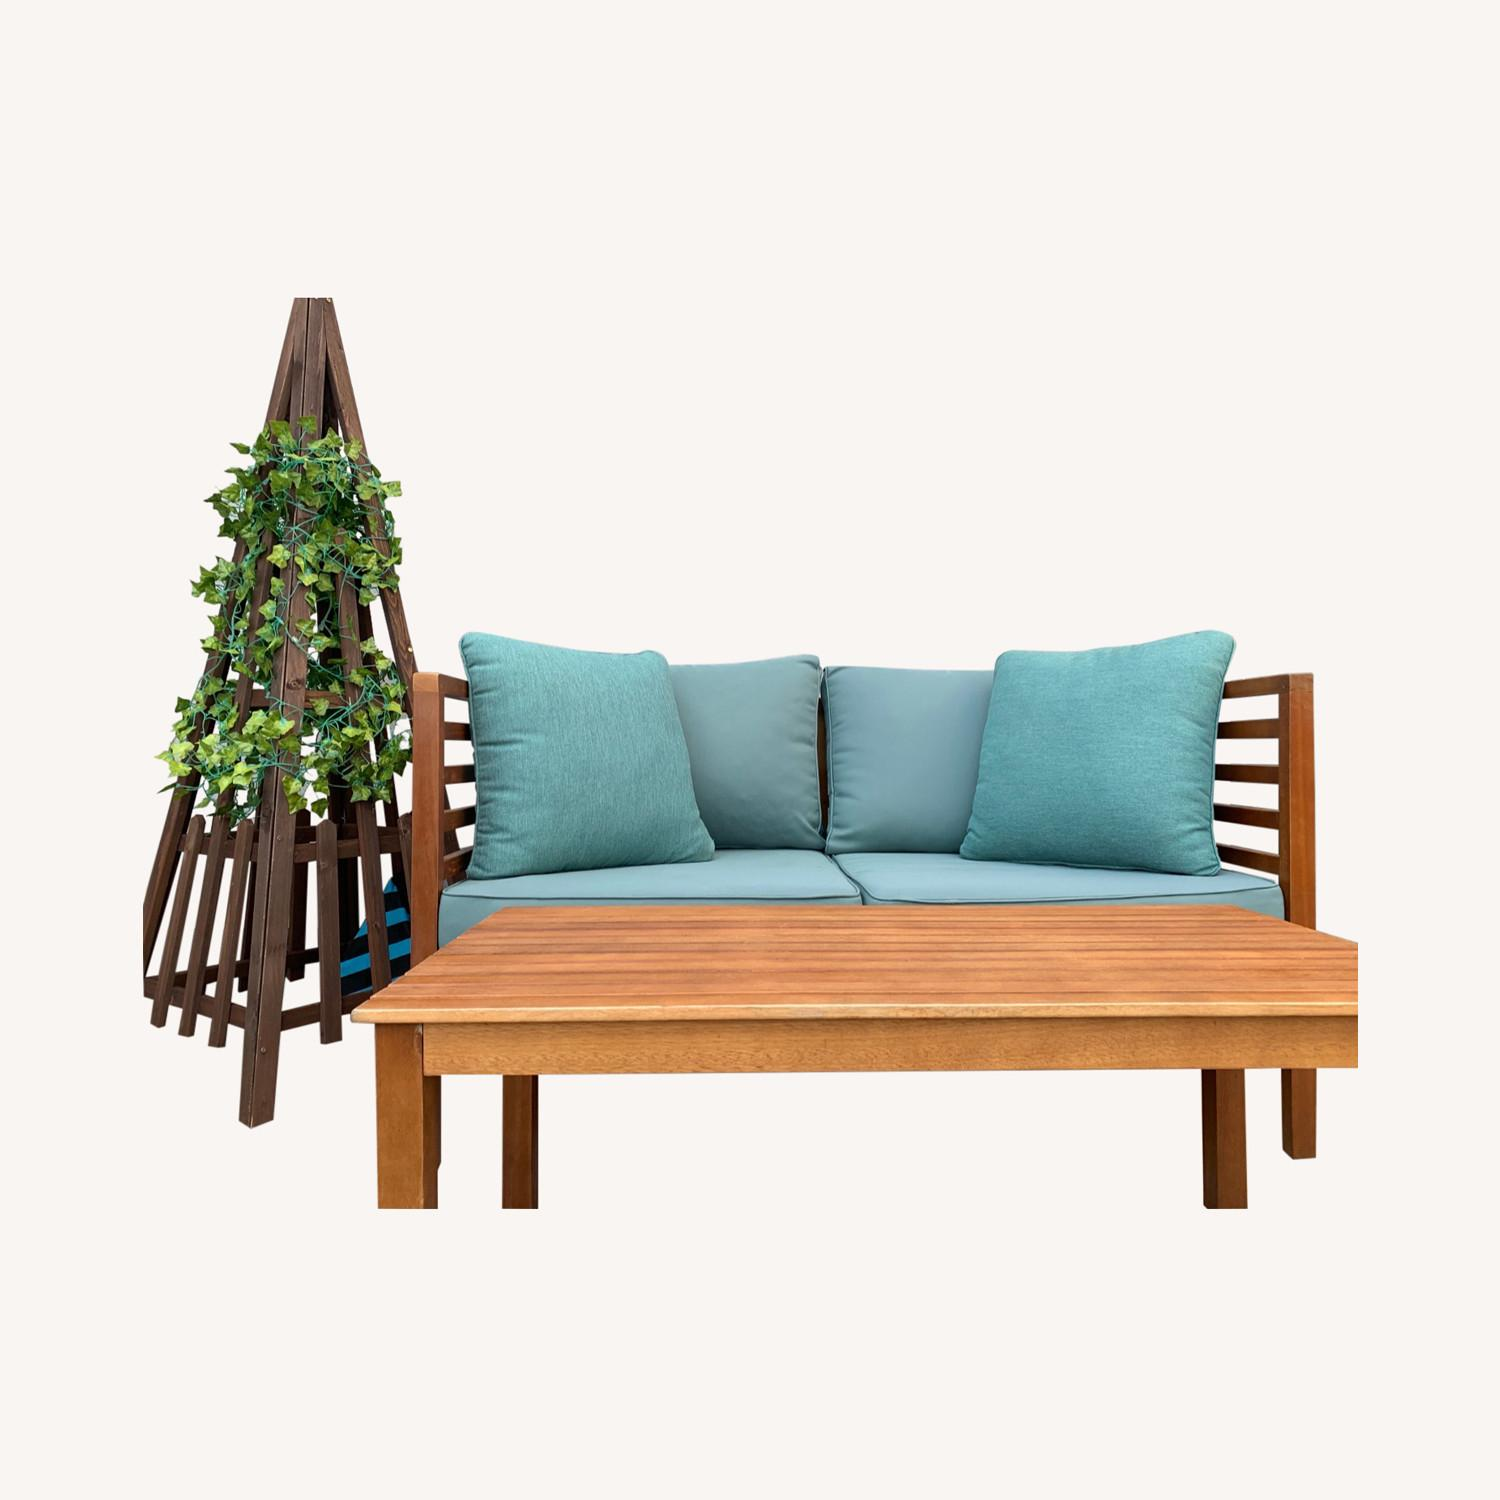 Patio Loveseat + Table + Obelisk With Faux Ivy - image-0